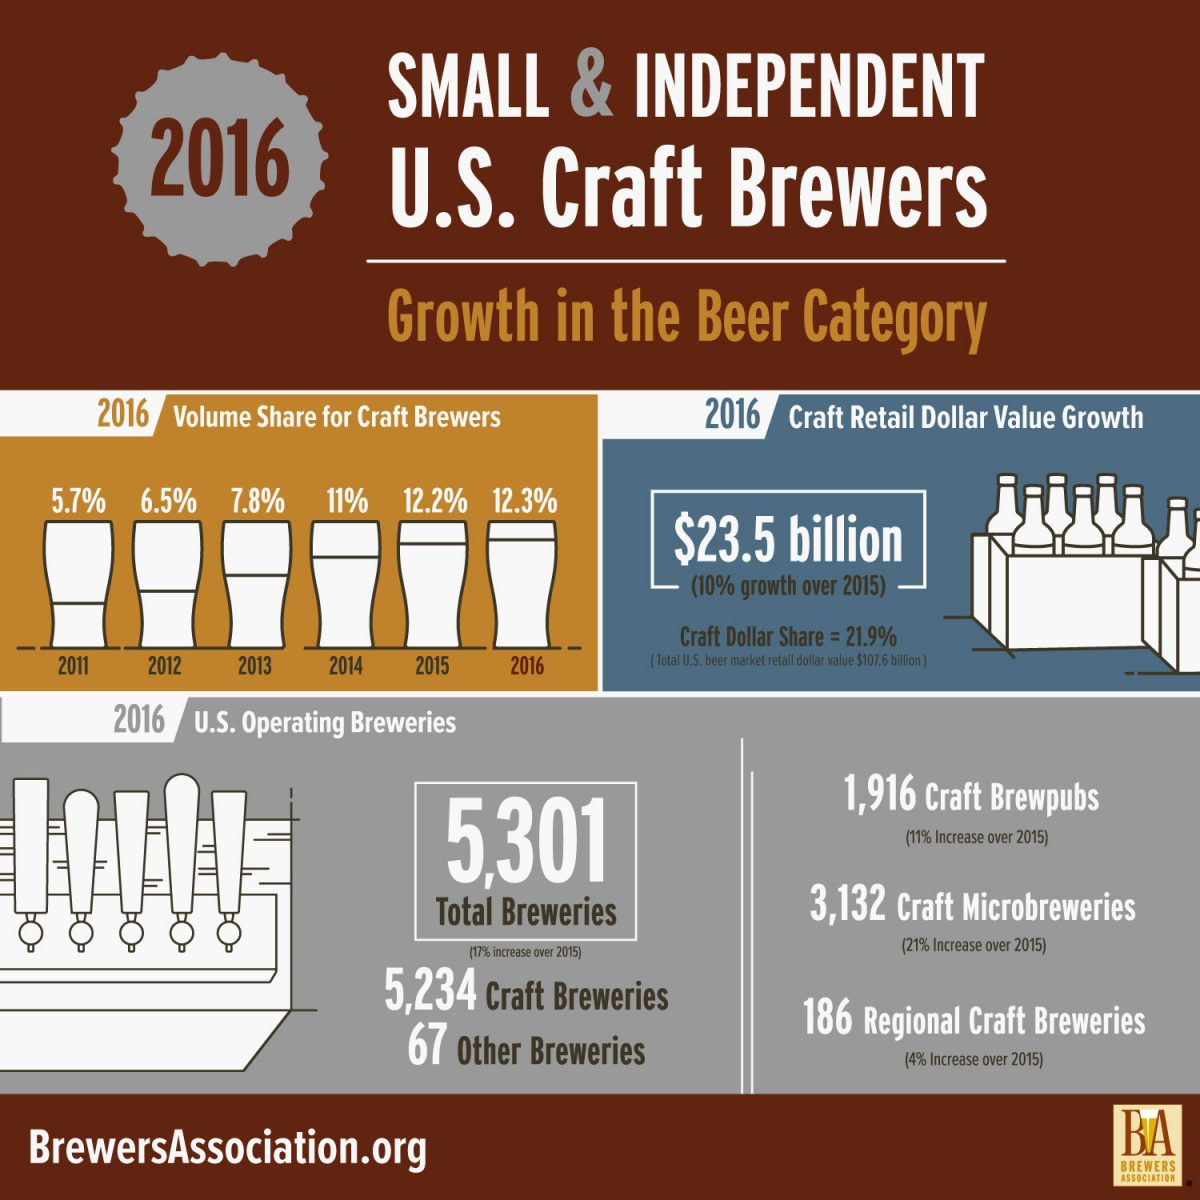 Craft Brewing Growth Statistics for 2016 Released by the Brewers Association